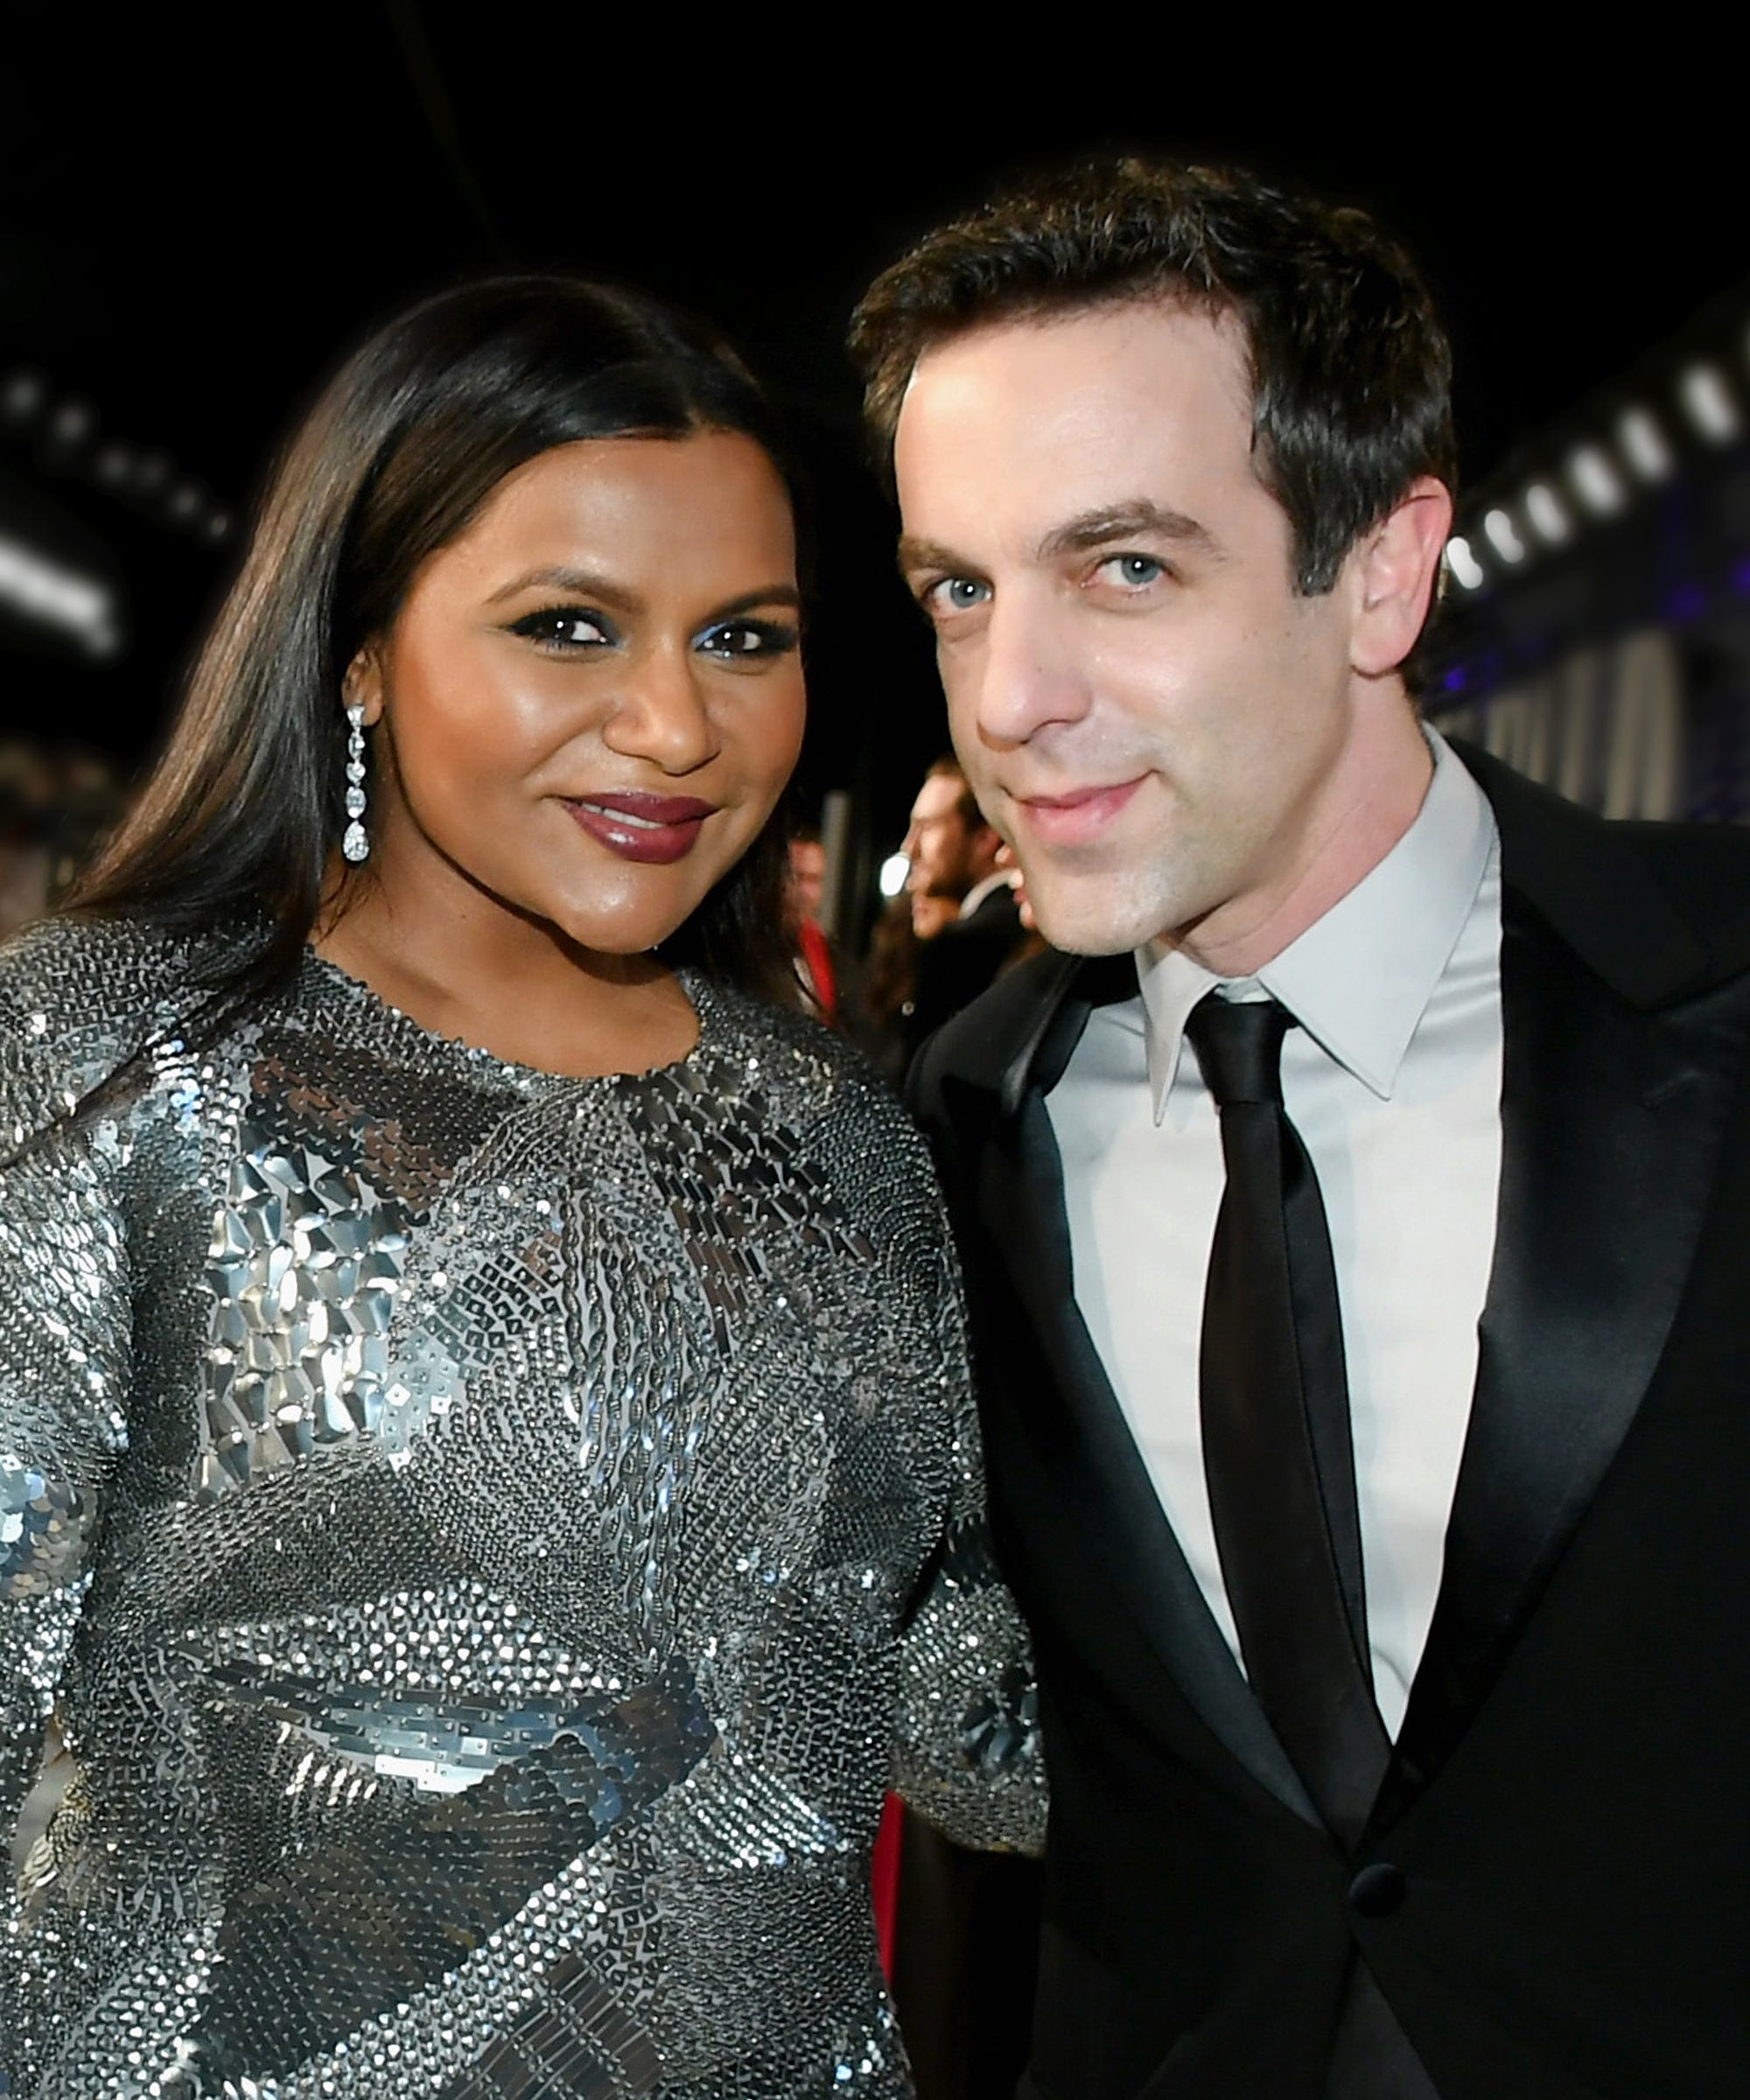 This Is How You Ex: Mindy Kaling Made B.J. Novak Her Baby's Godfather